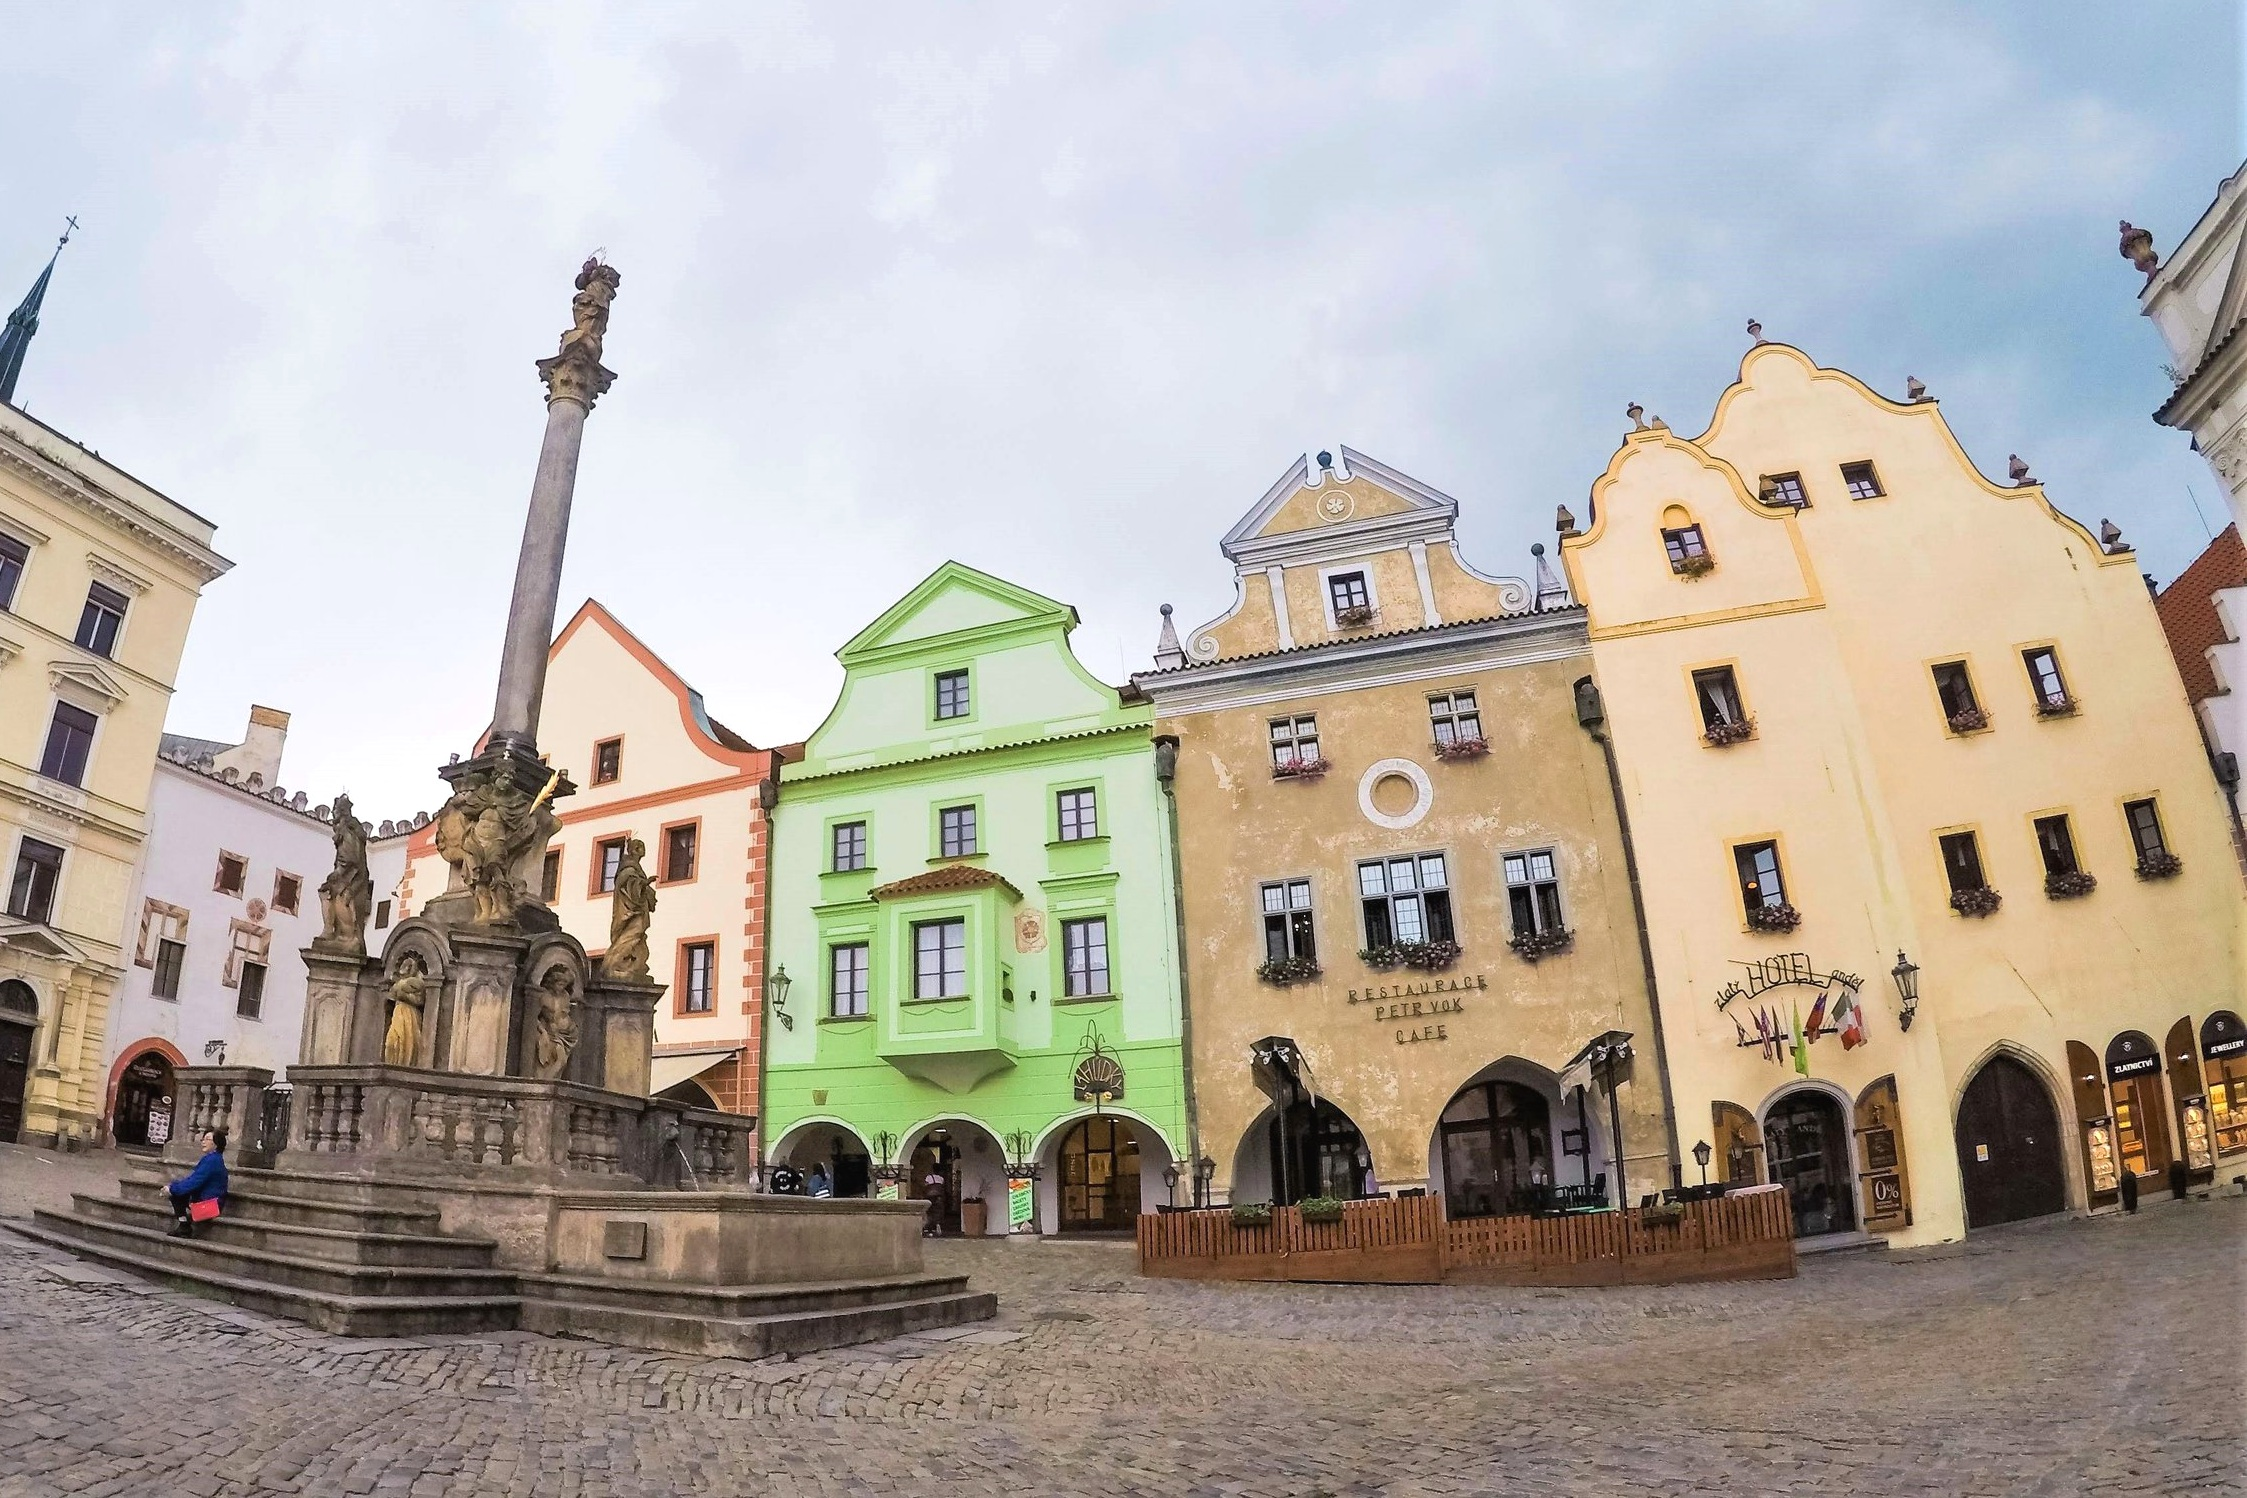 Cesky Krumlov's historic square is full of brightly painted buildings and stone streets. These Prague to Cesky Krumlov buses and tours include time to walk around the magical Bohemian city.